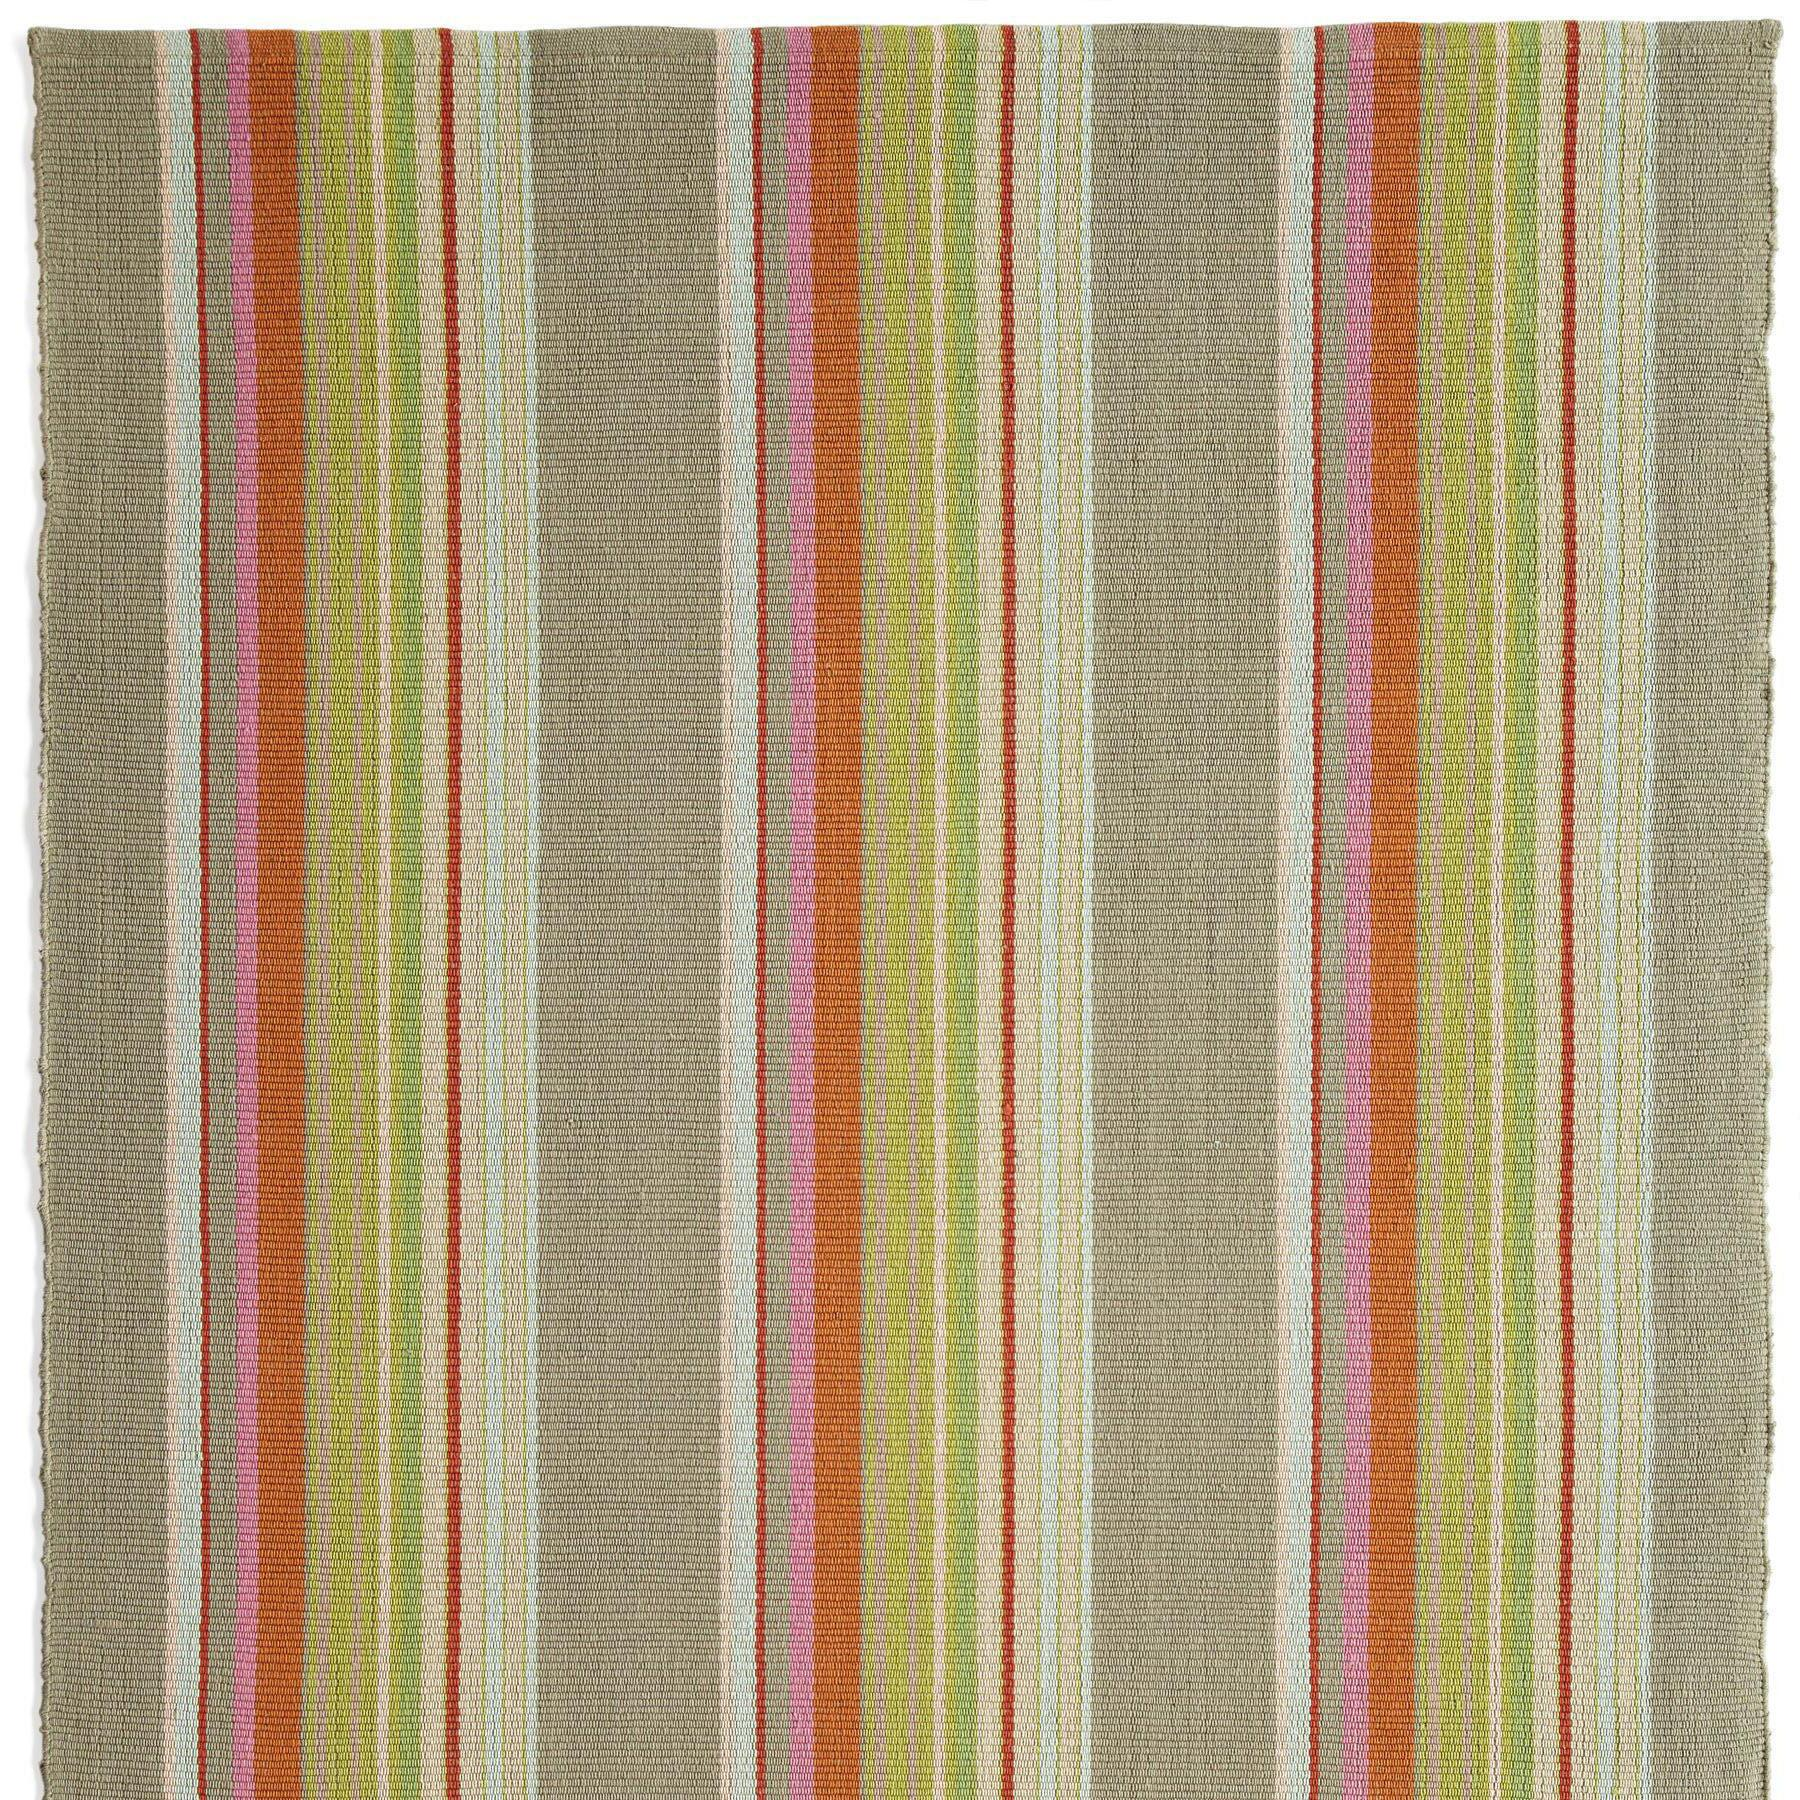 HADLERY STRIPE RUG, LARGE: View 1